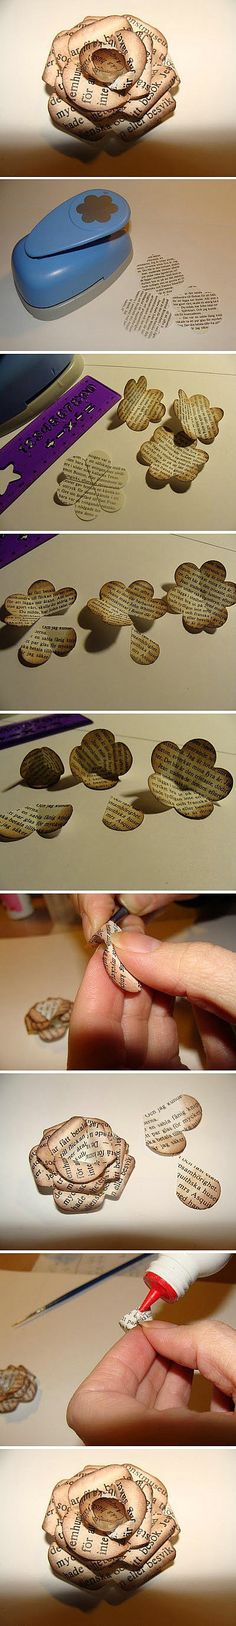 Book craft pinned by Gail, the librarian (so she should know!)